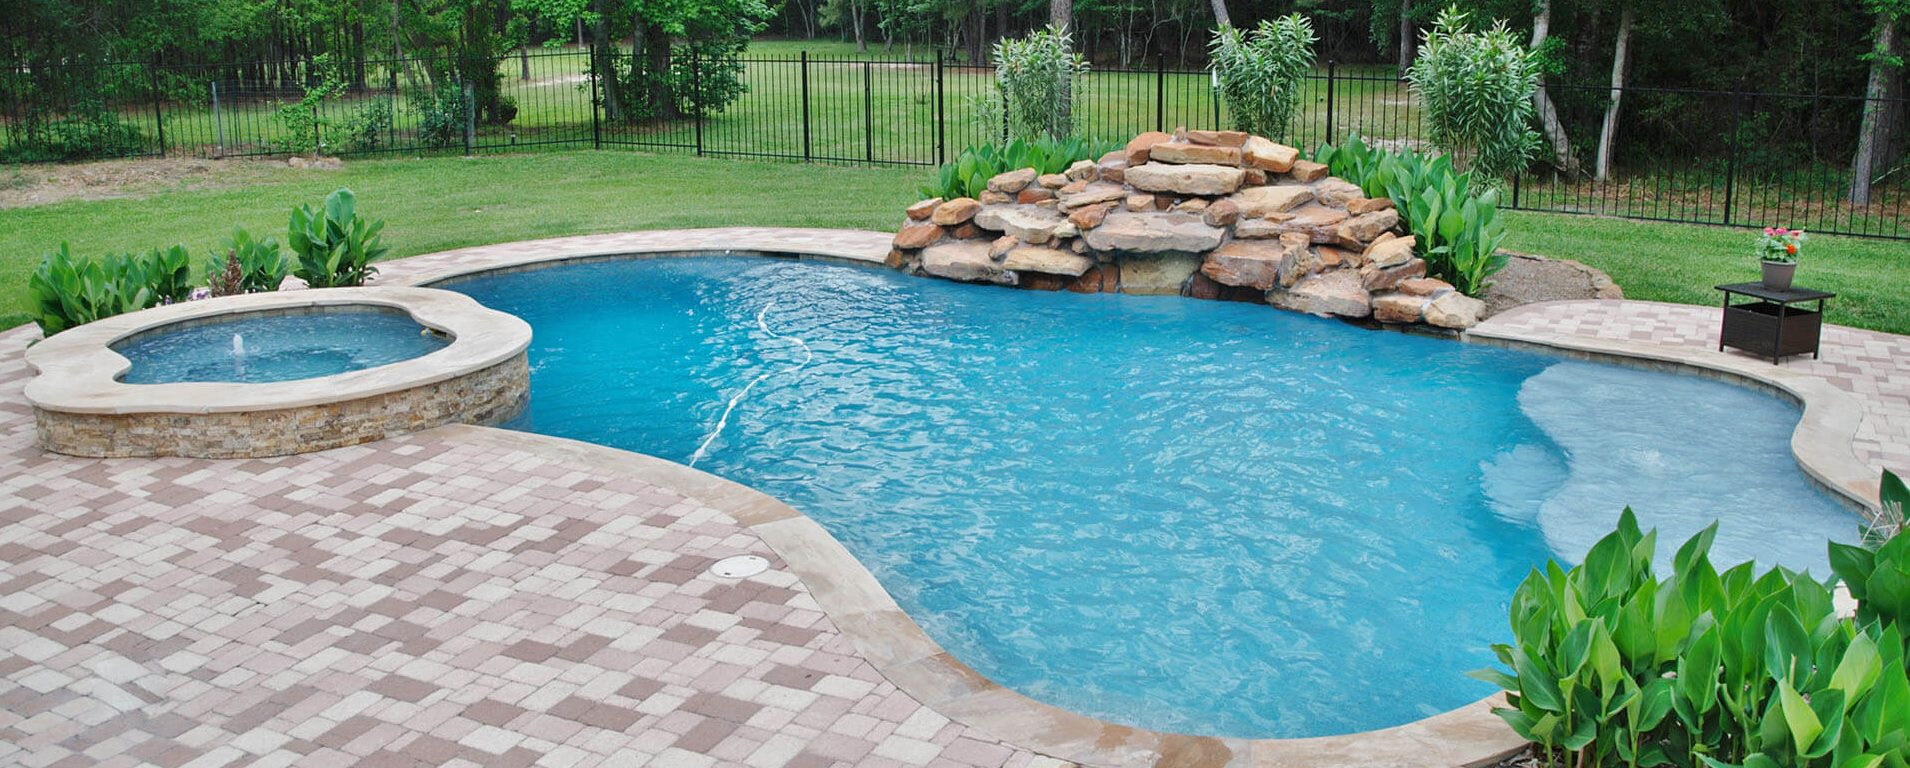 In-ground or Above-ground: What's the right pool for you?